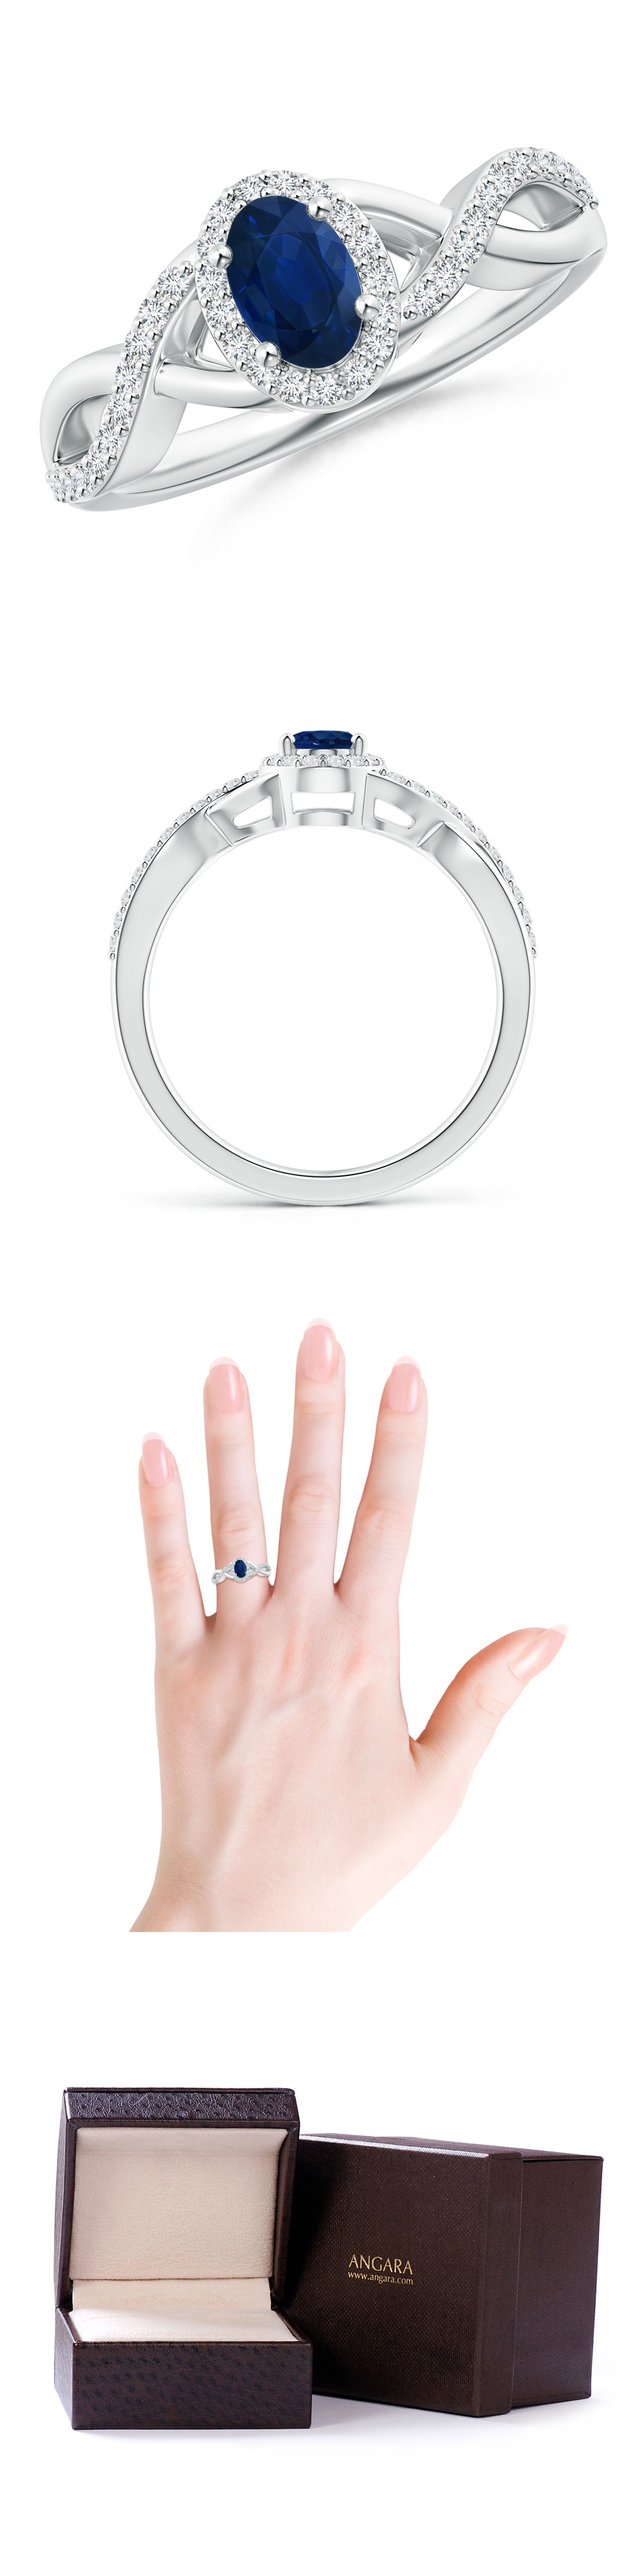 Gemstone 177020: Natural Blue Sapphire Diamond Halo Crossover Engagement Ring In 14K White Gold BUY IT NOW ONLY: $773.1